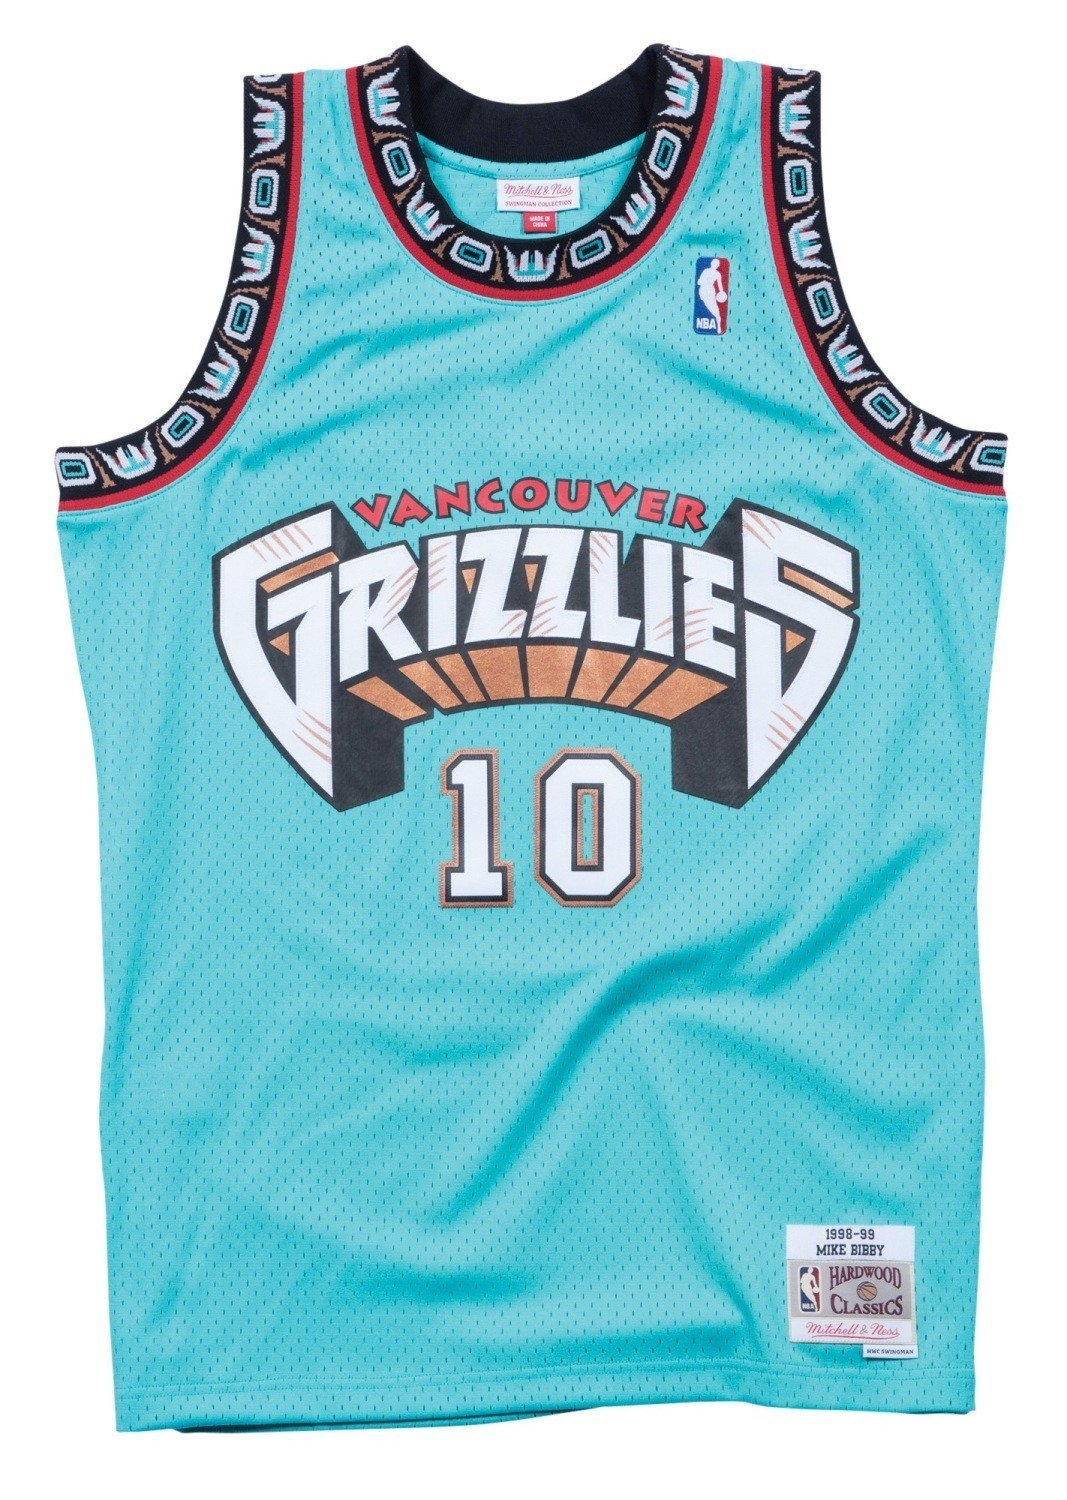 1cd203956 Details about Mike Bibby Vancouver Grizzlies Mitchell   Ness NBA Swingman 98 -99 Jersey - Teal